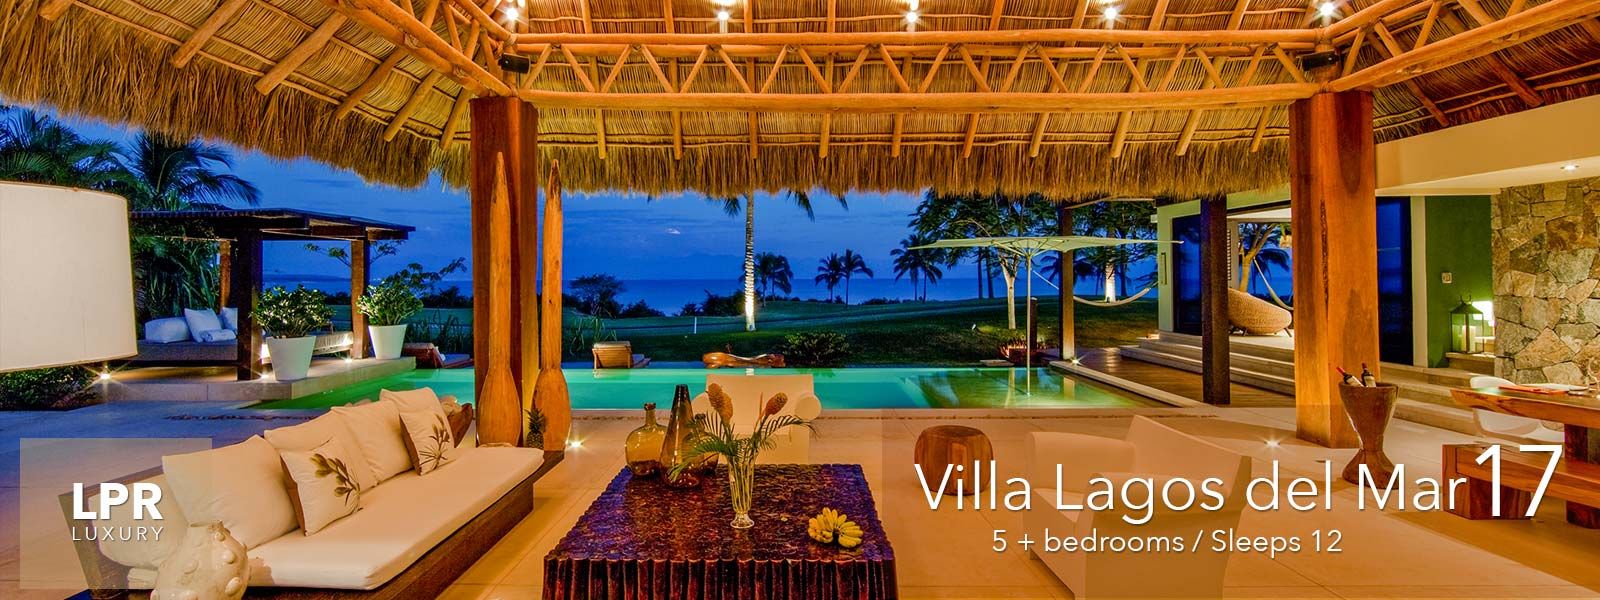 Villa Lagos del Mar 17 - Luxury Punta Mita Resort Real Estate and Vacation Rentals